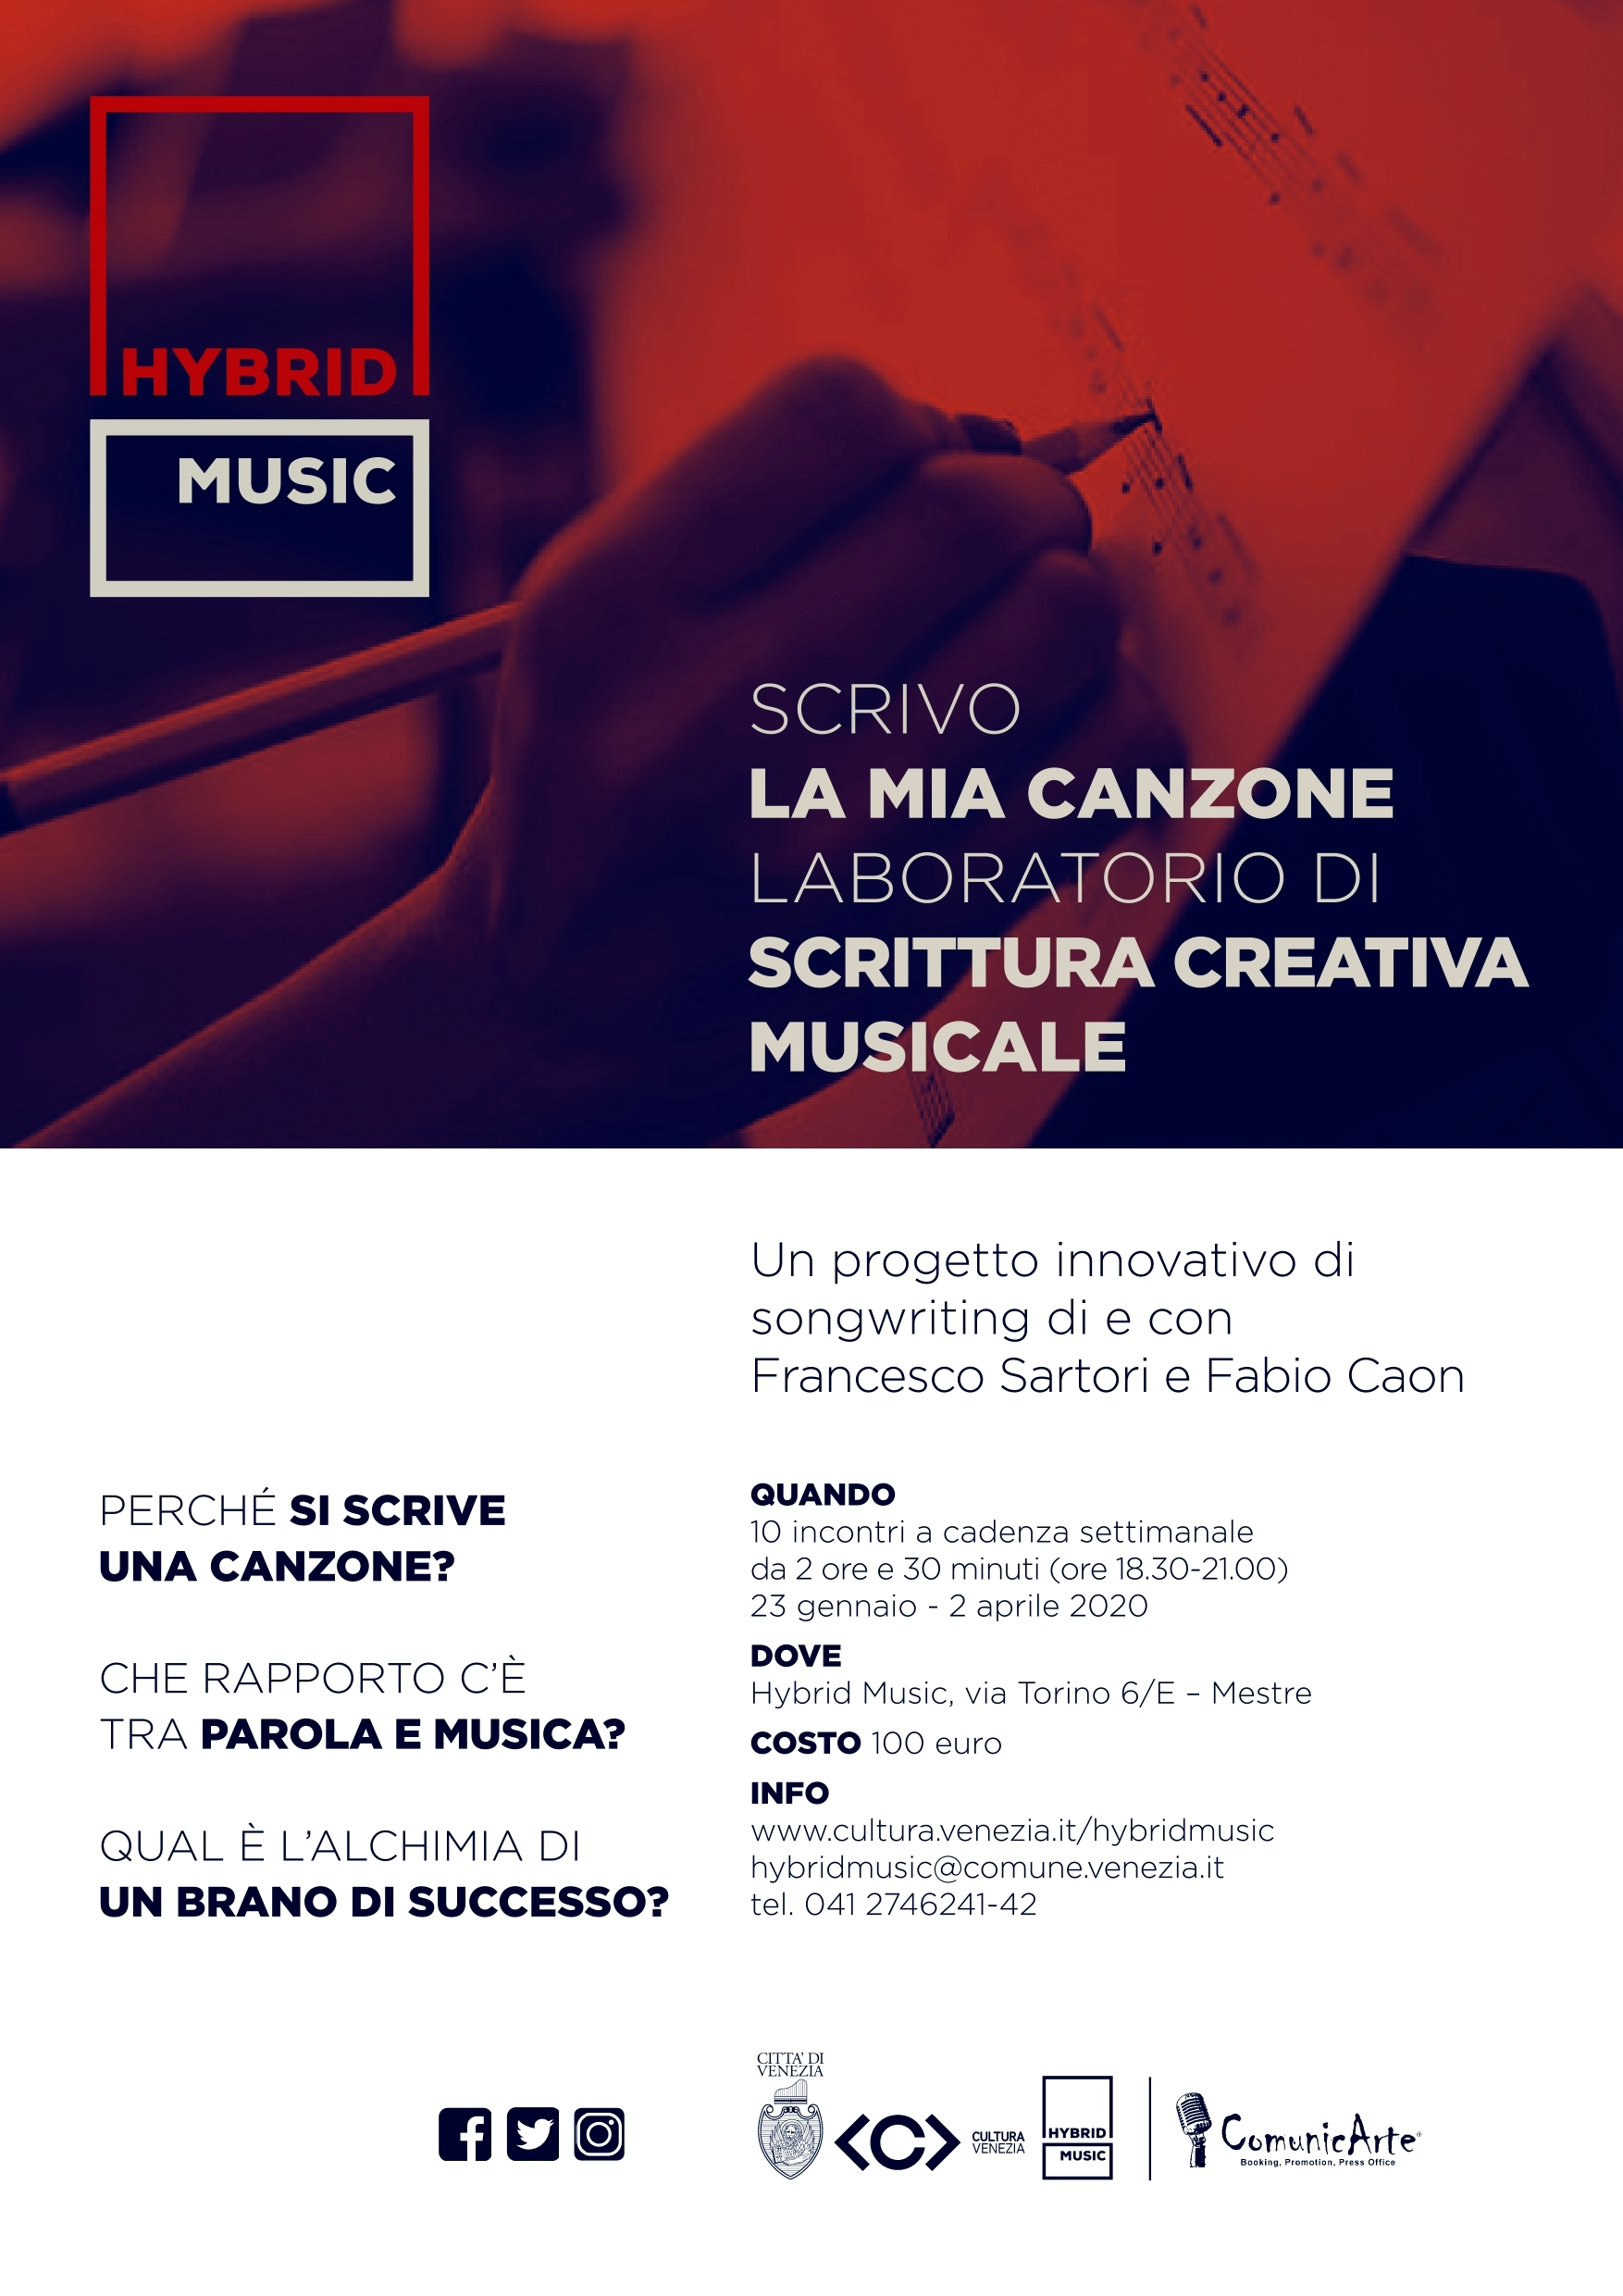 SONGWRITER LOCANDINA STAMPA_page-0001-2